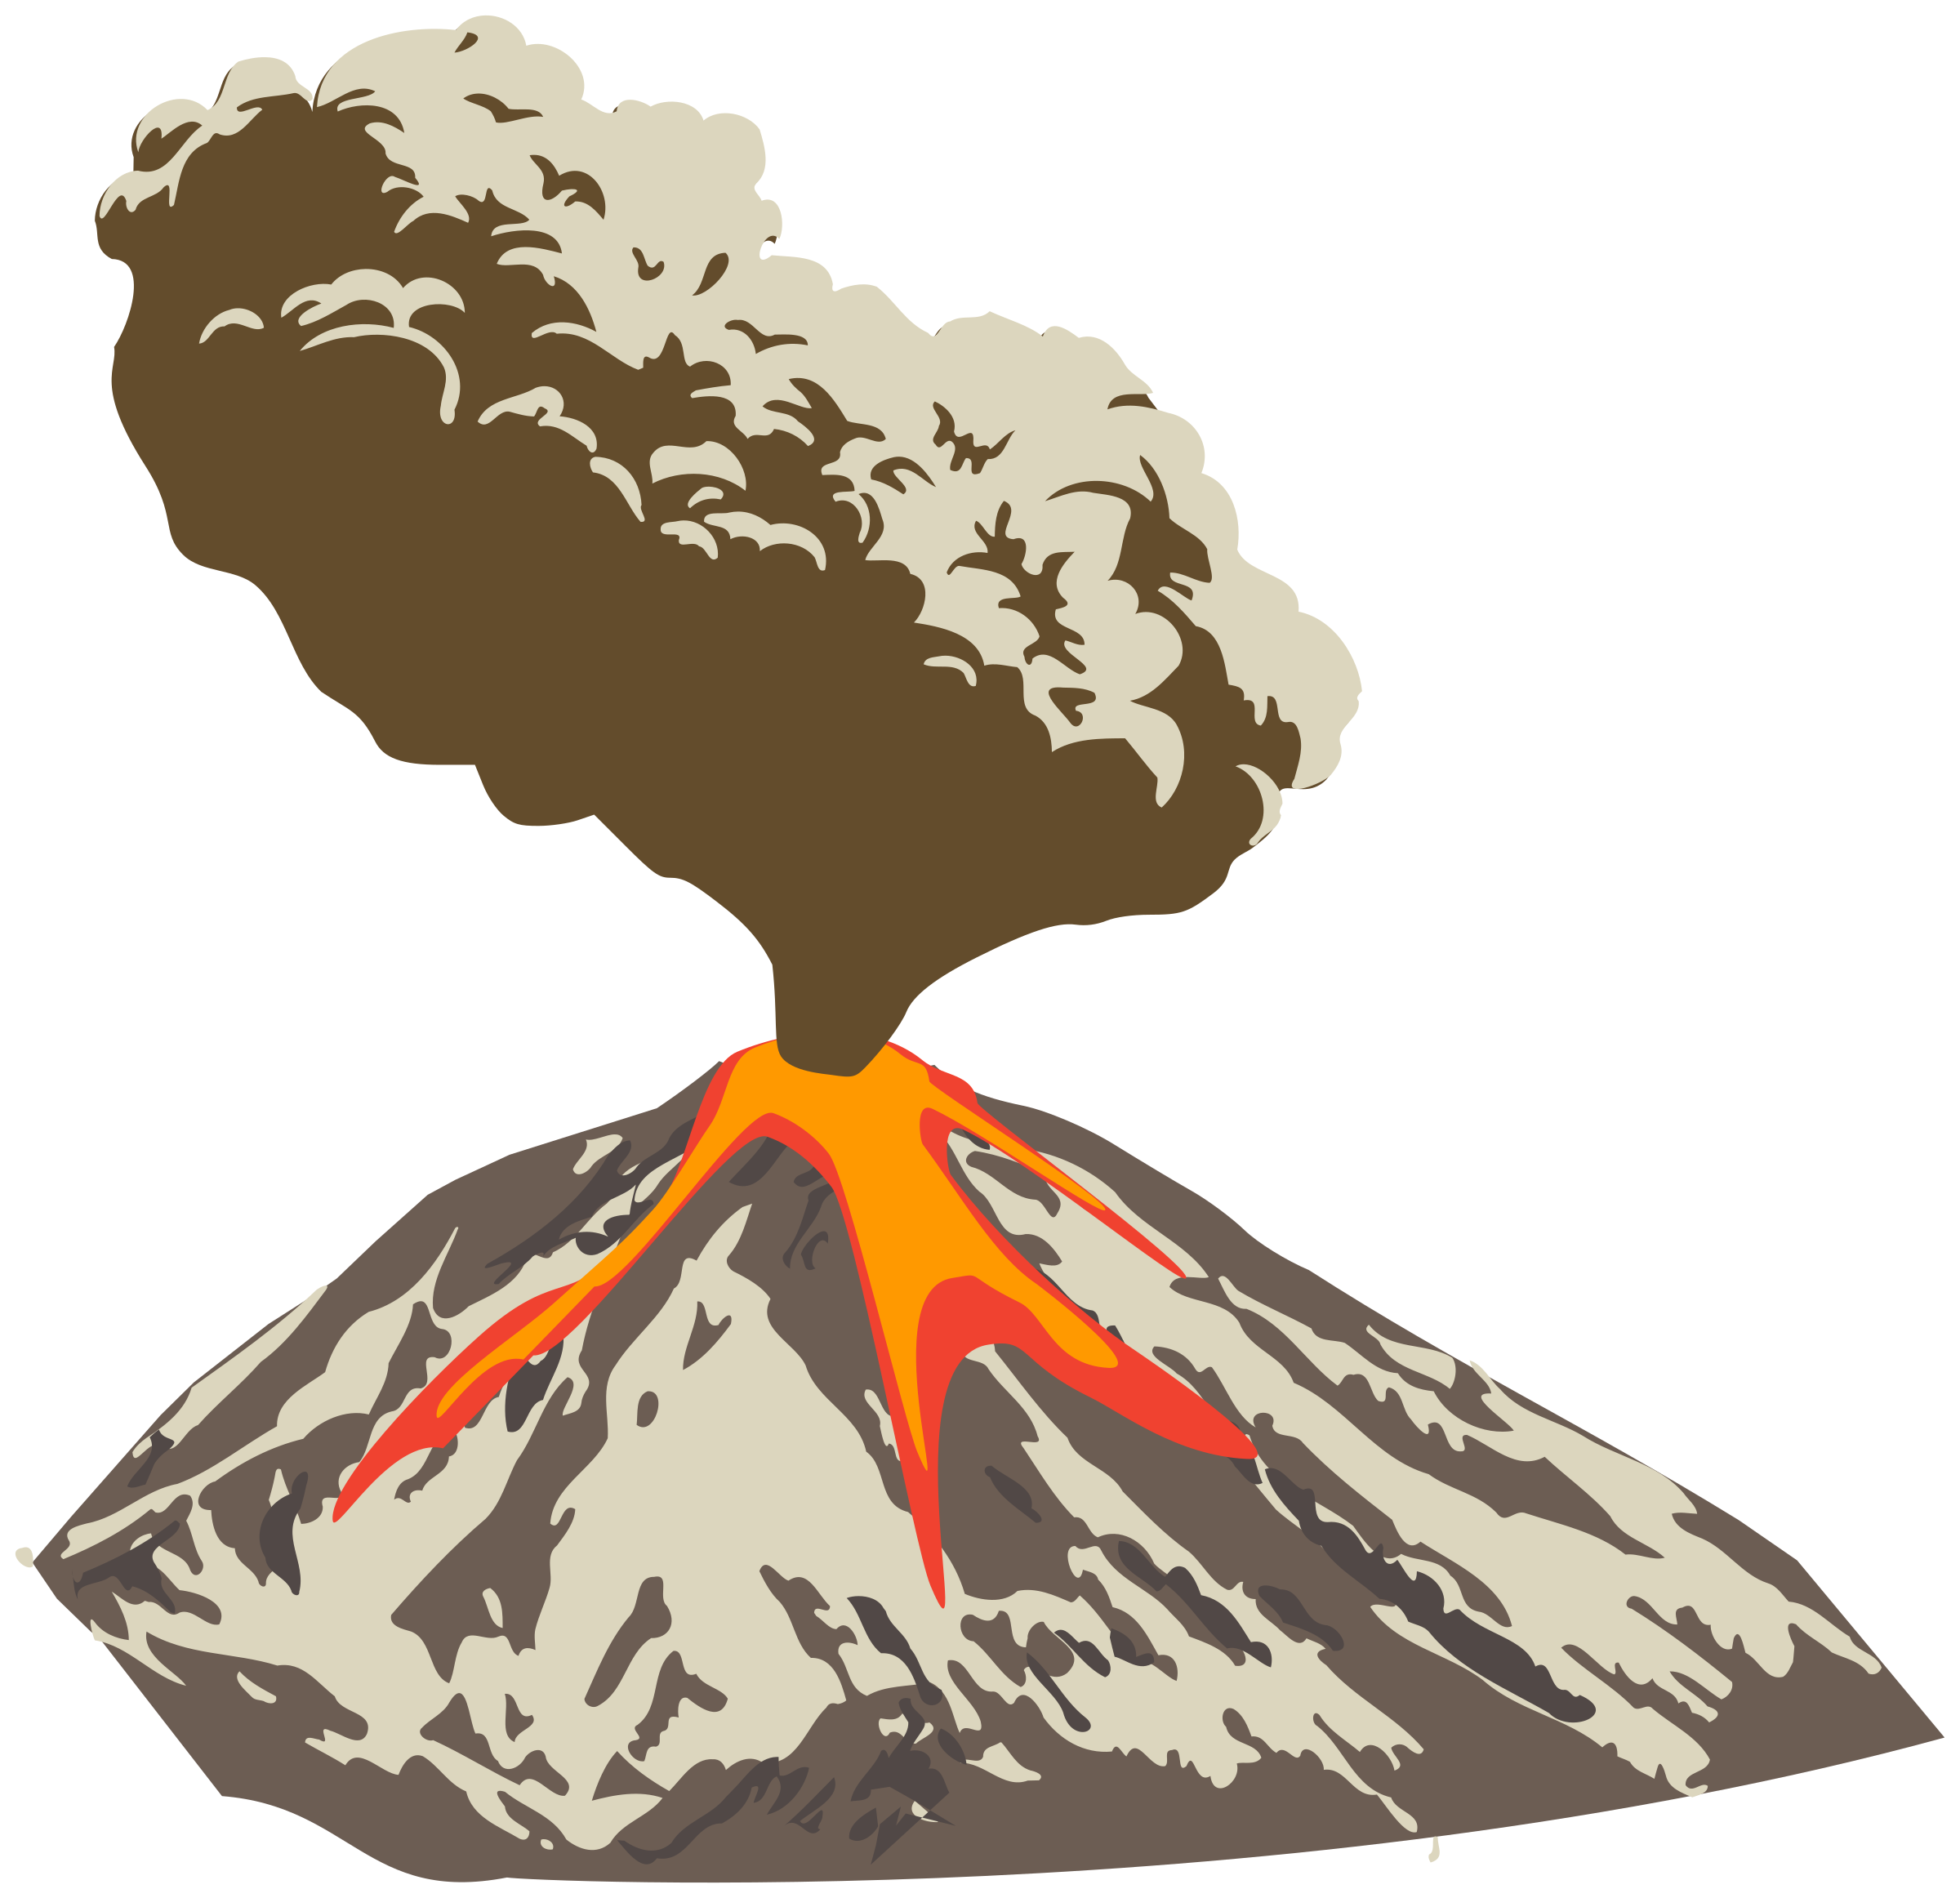 jpg black and white stock Volcano clipart. Erupting with ash plume